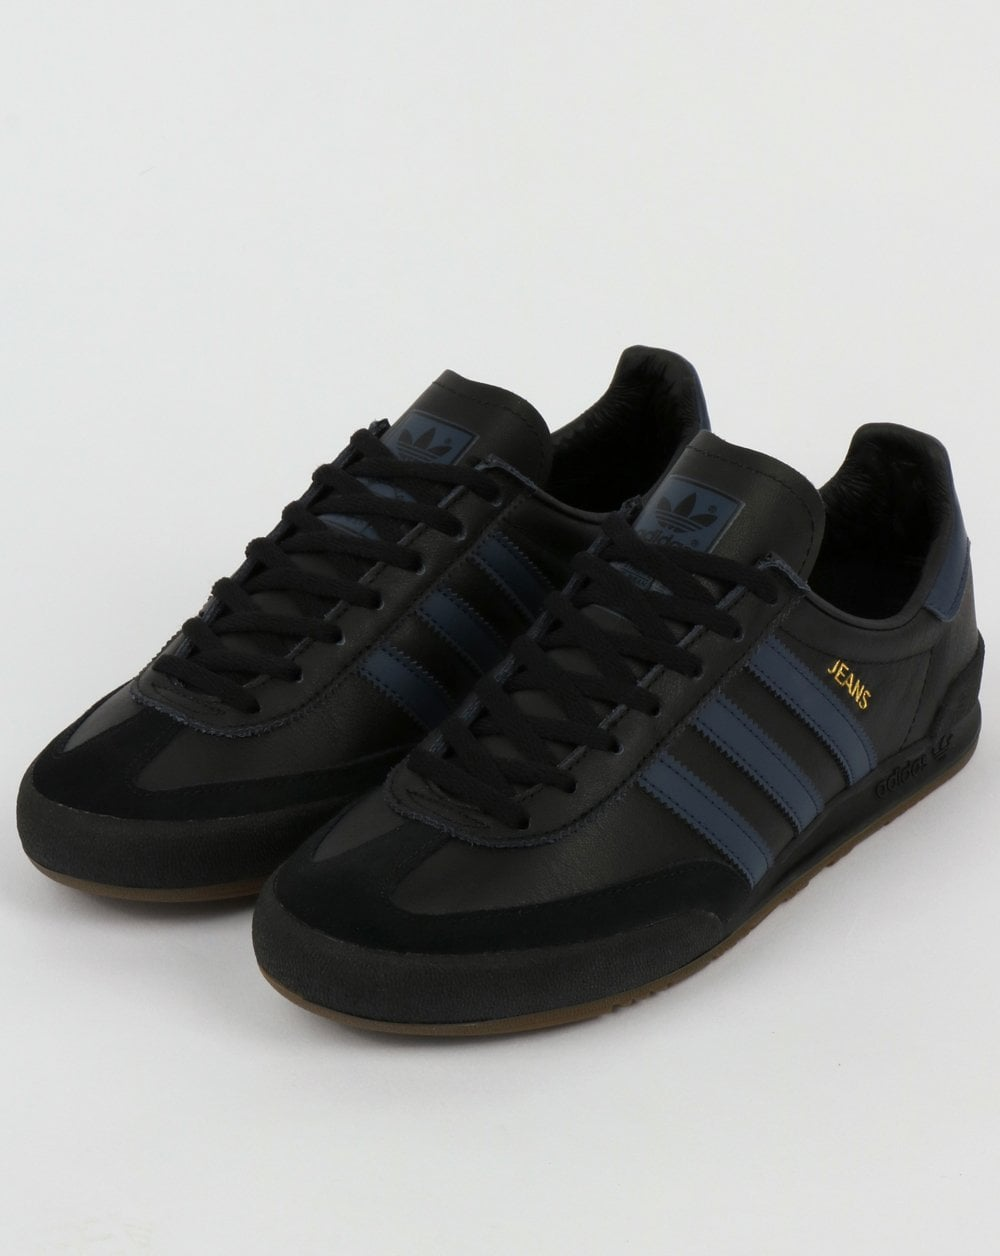 adidas Jeans Leather Black